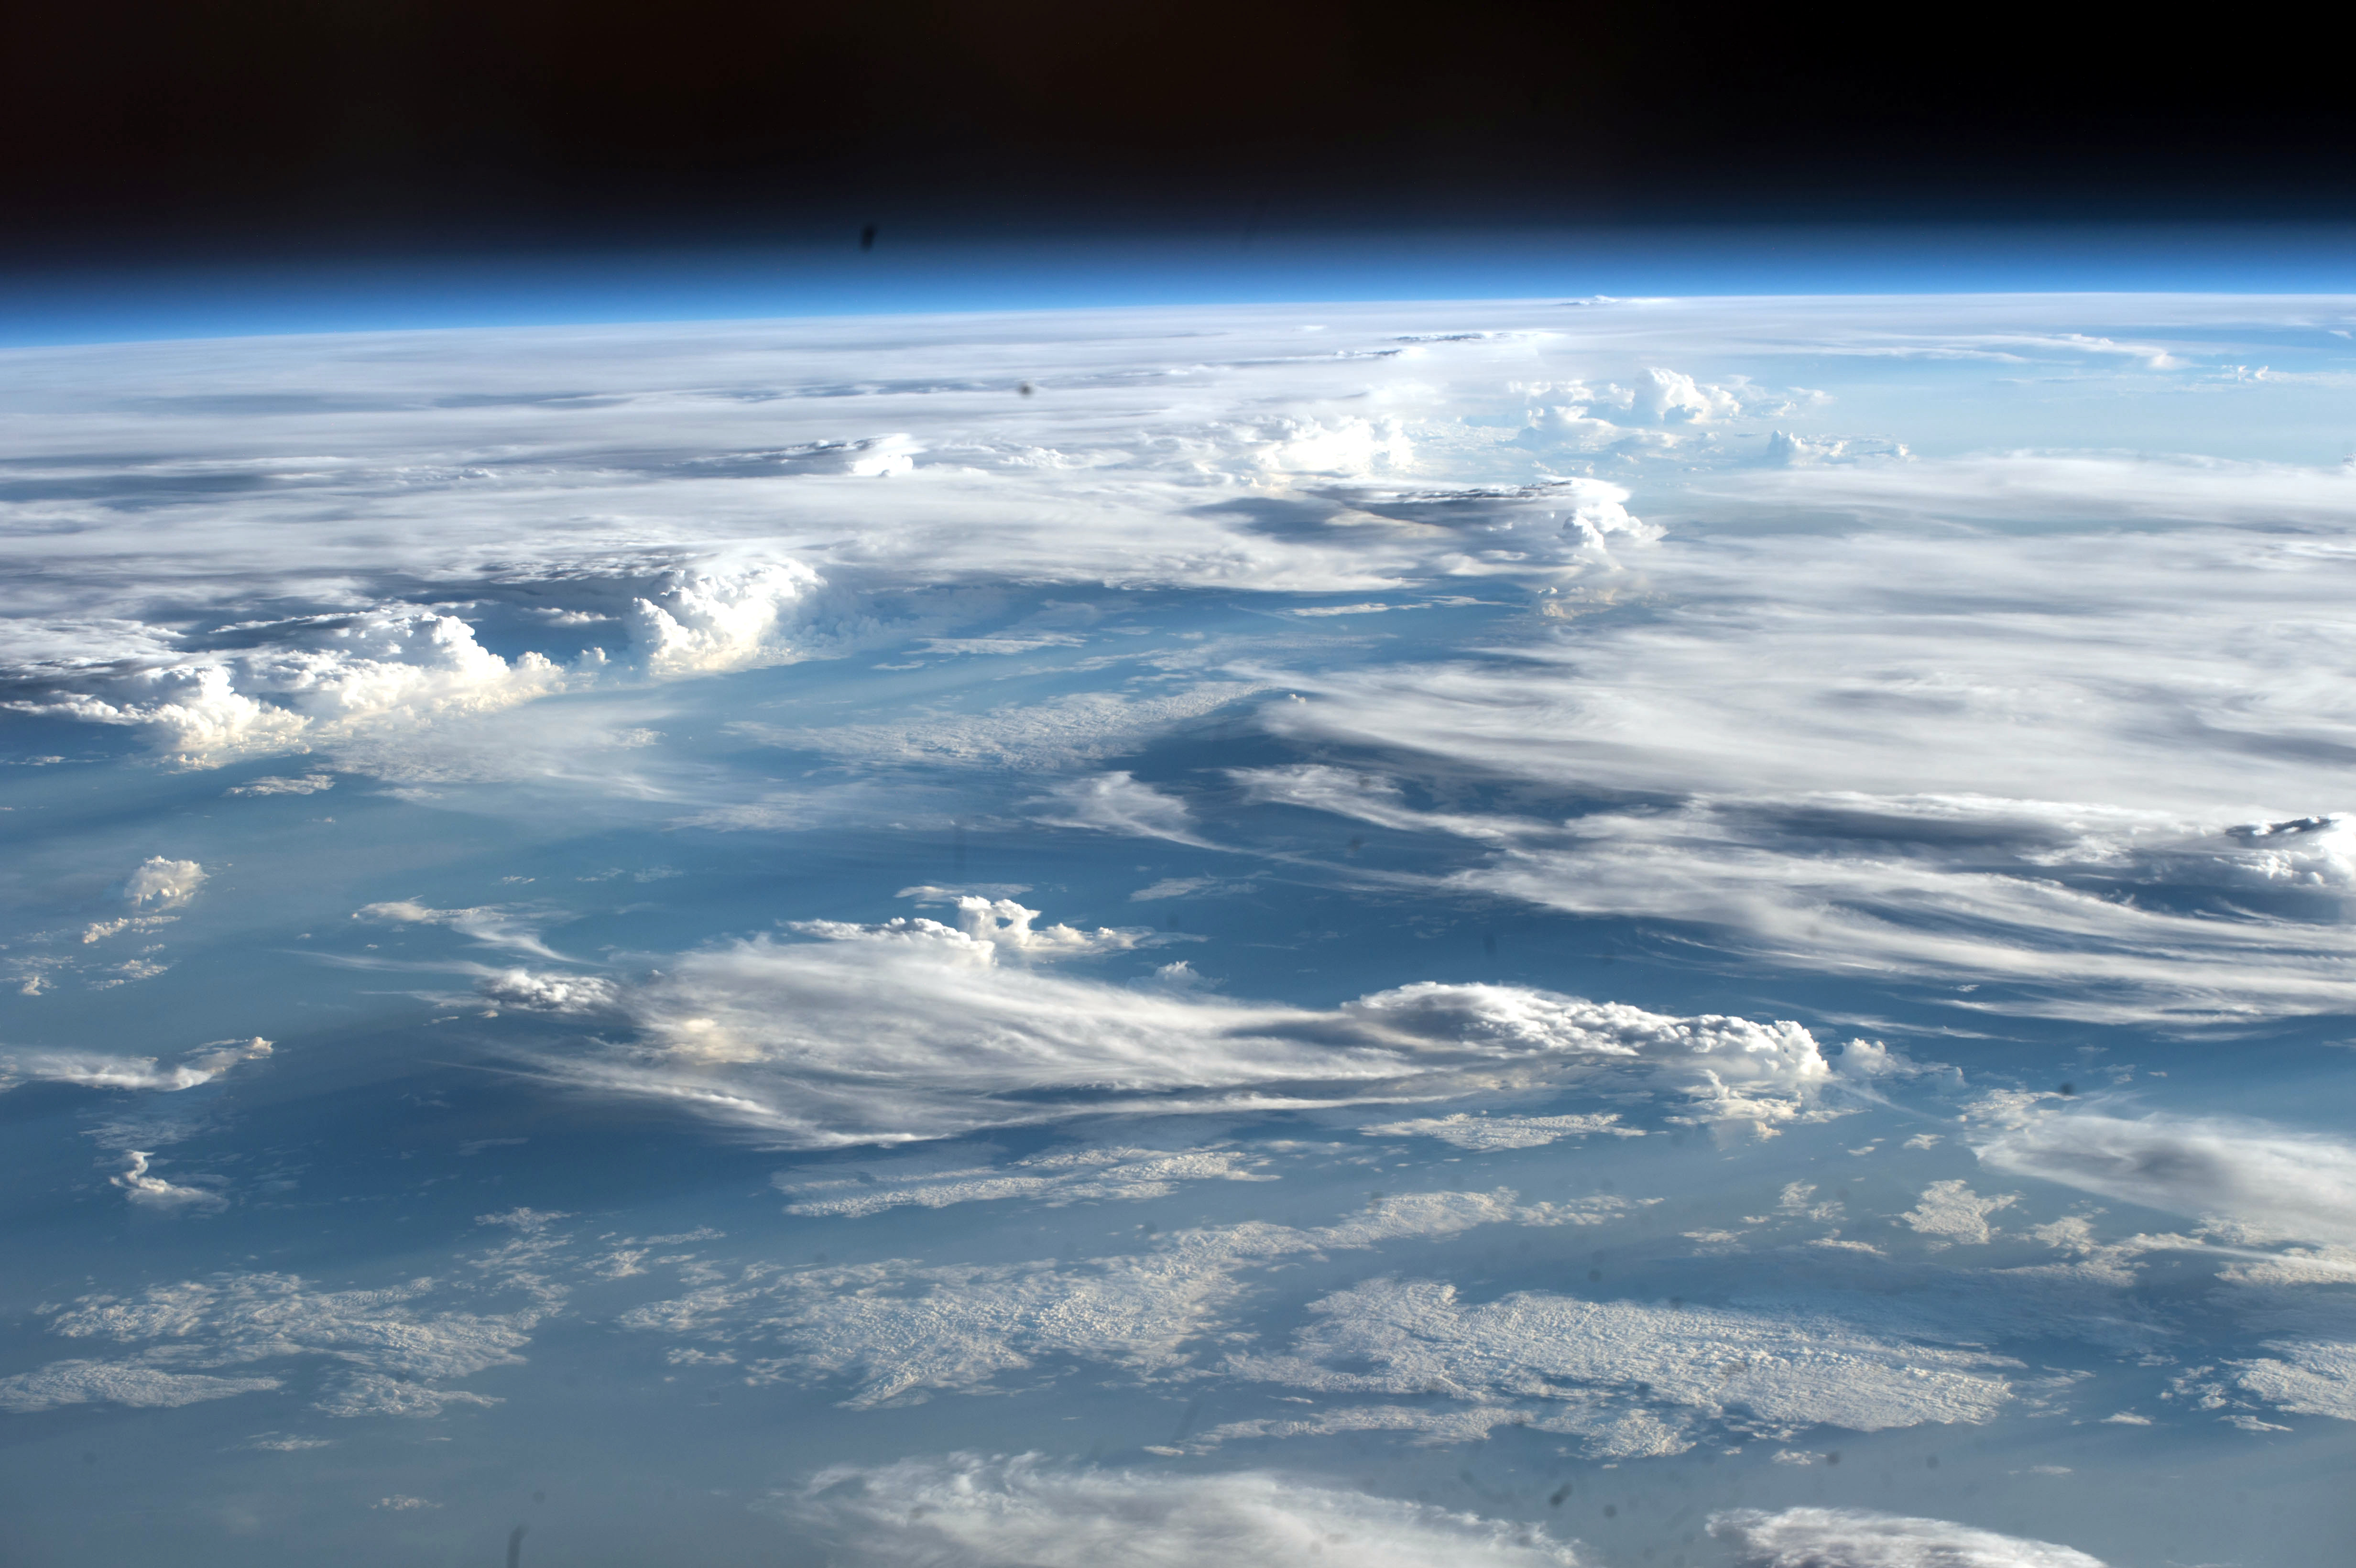 Space Station Crew Sees Lots of Clouds | NASA